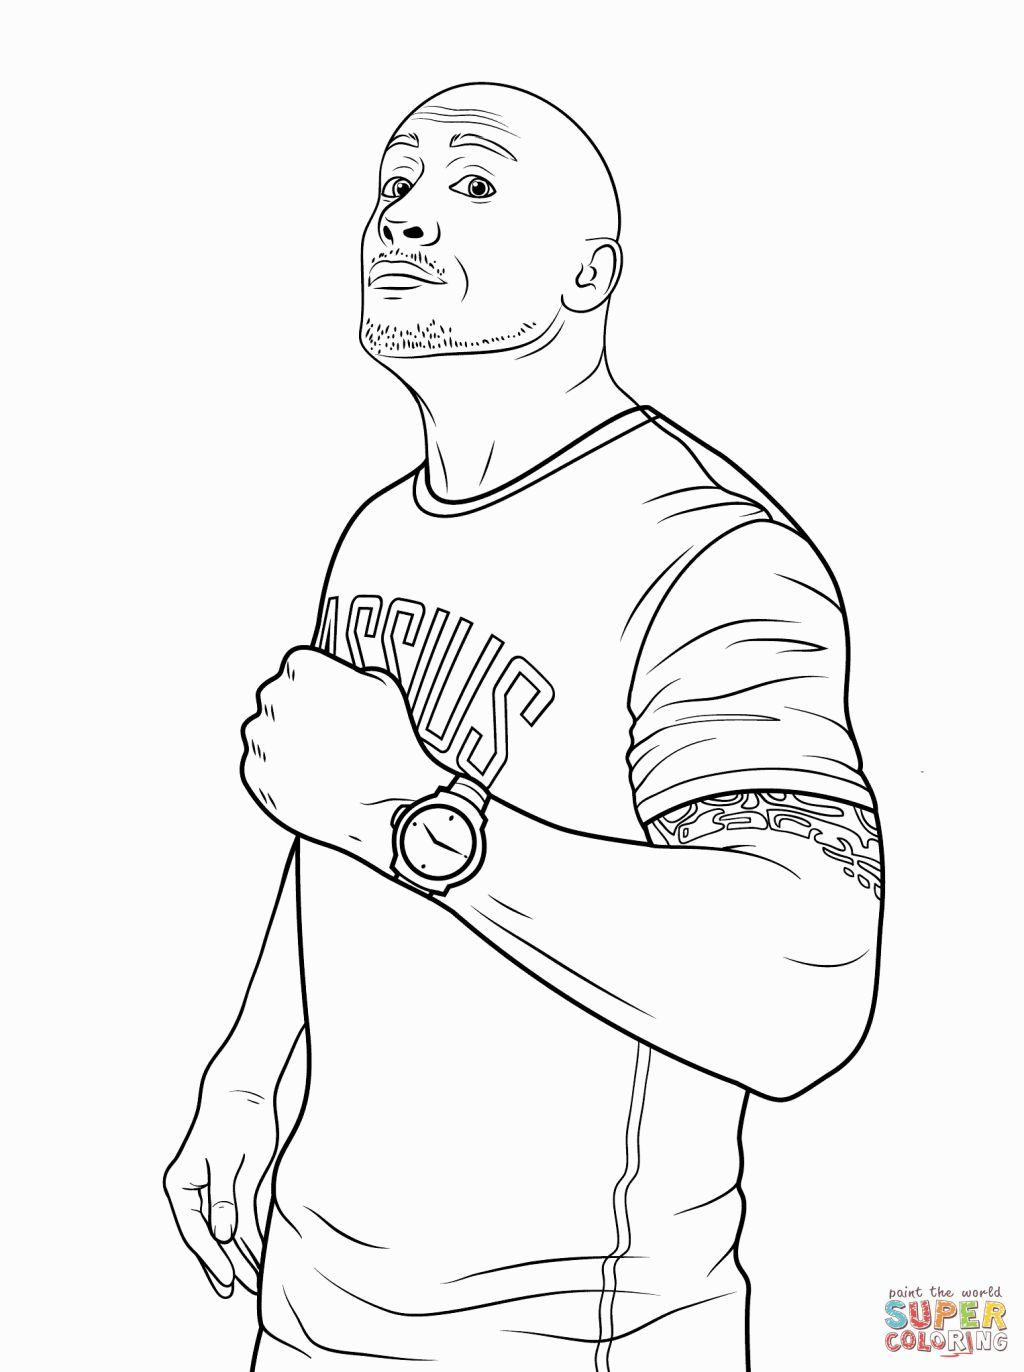 Pin By Faycal Blh On Wwe Cartoon Wwe Coloring Pages Coloring Pages Wwe